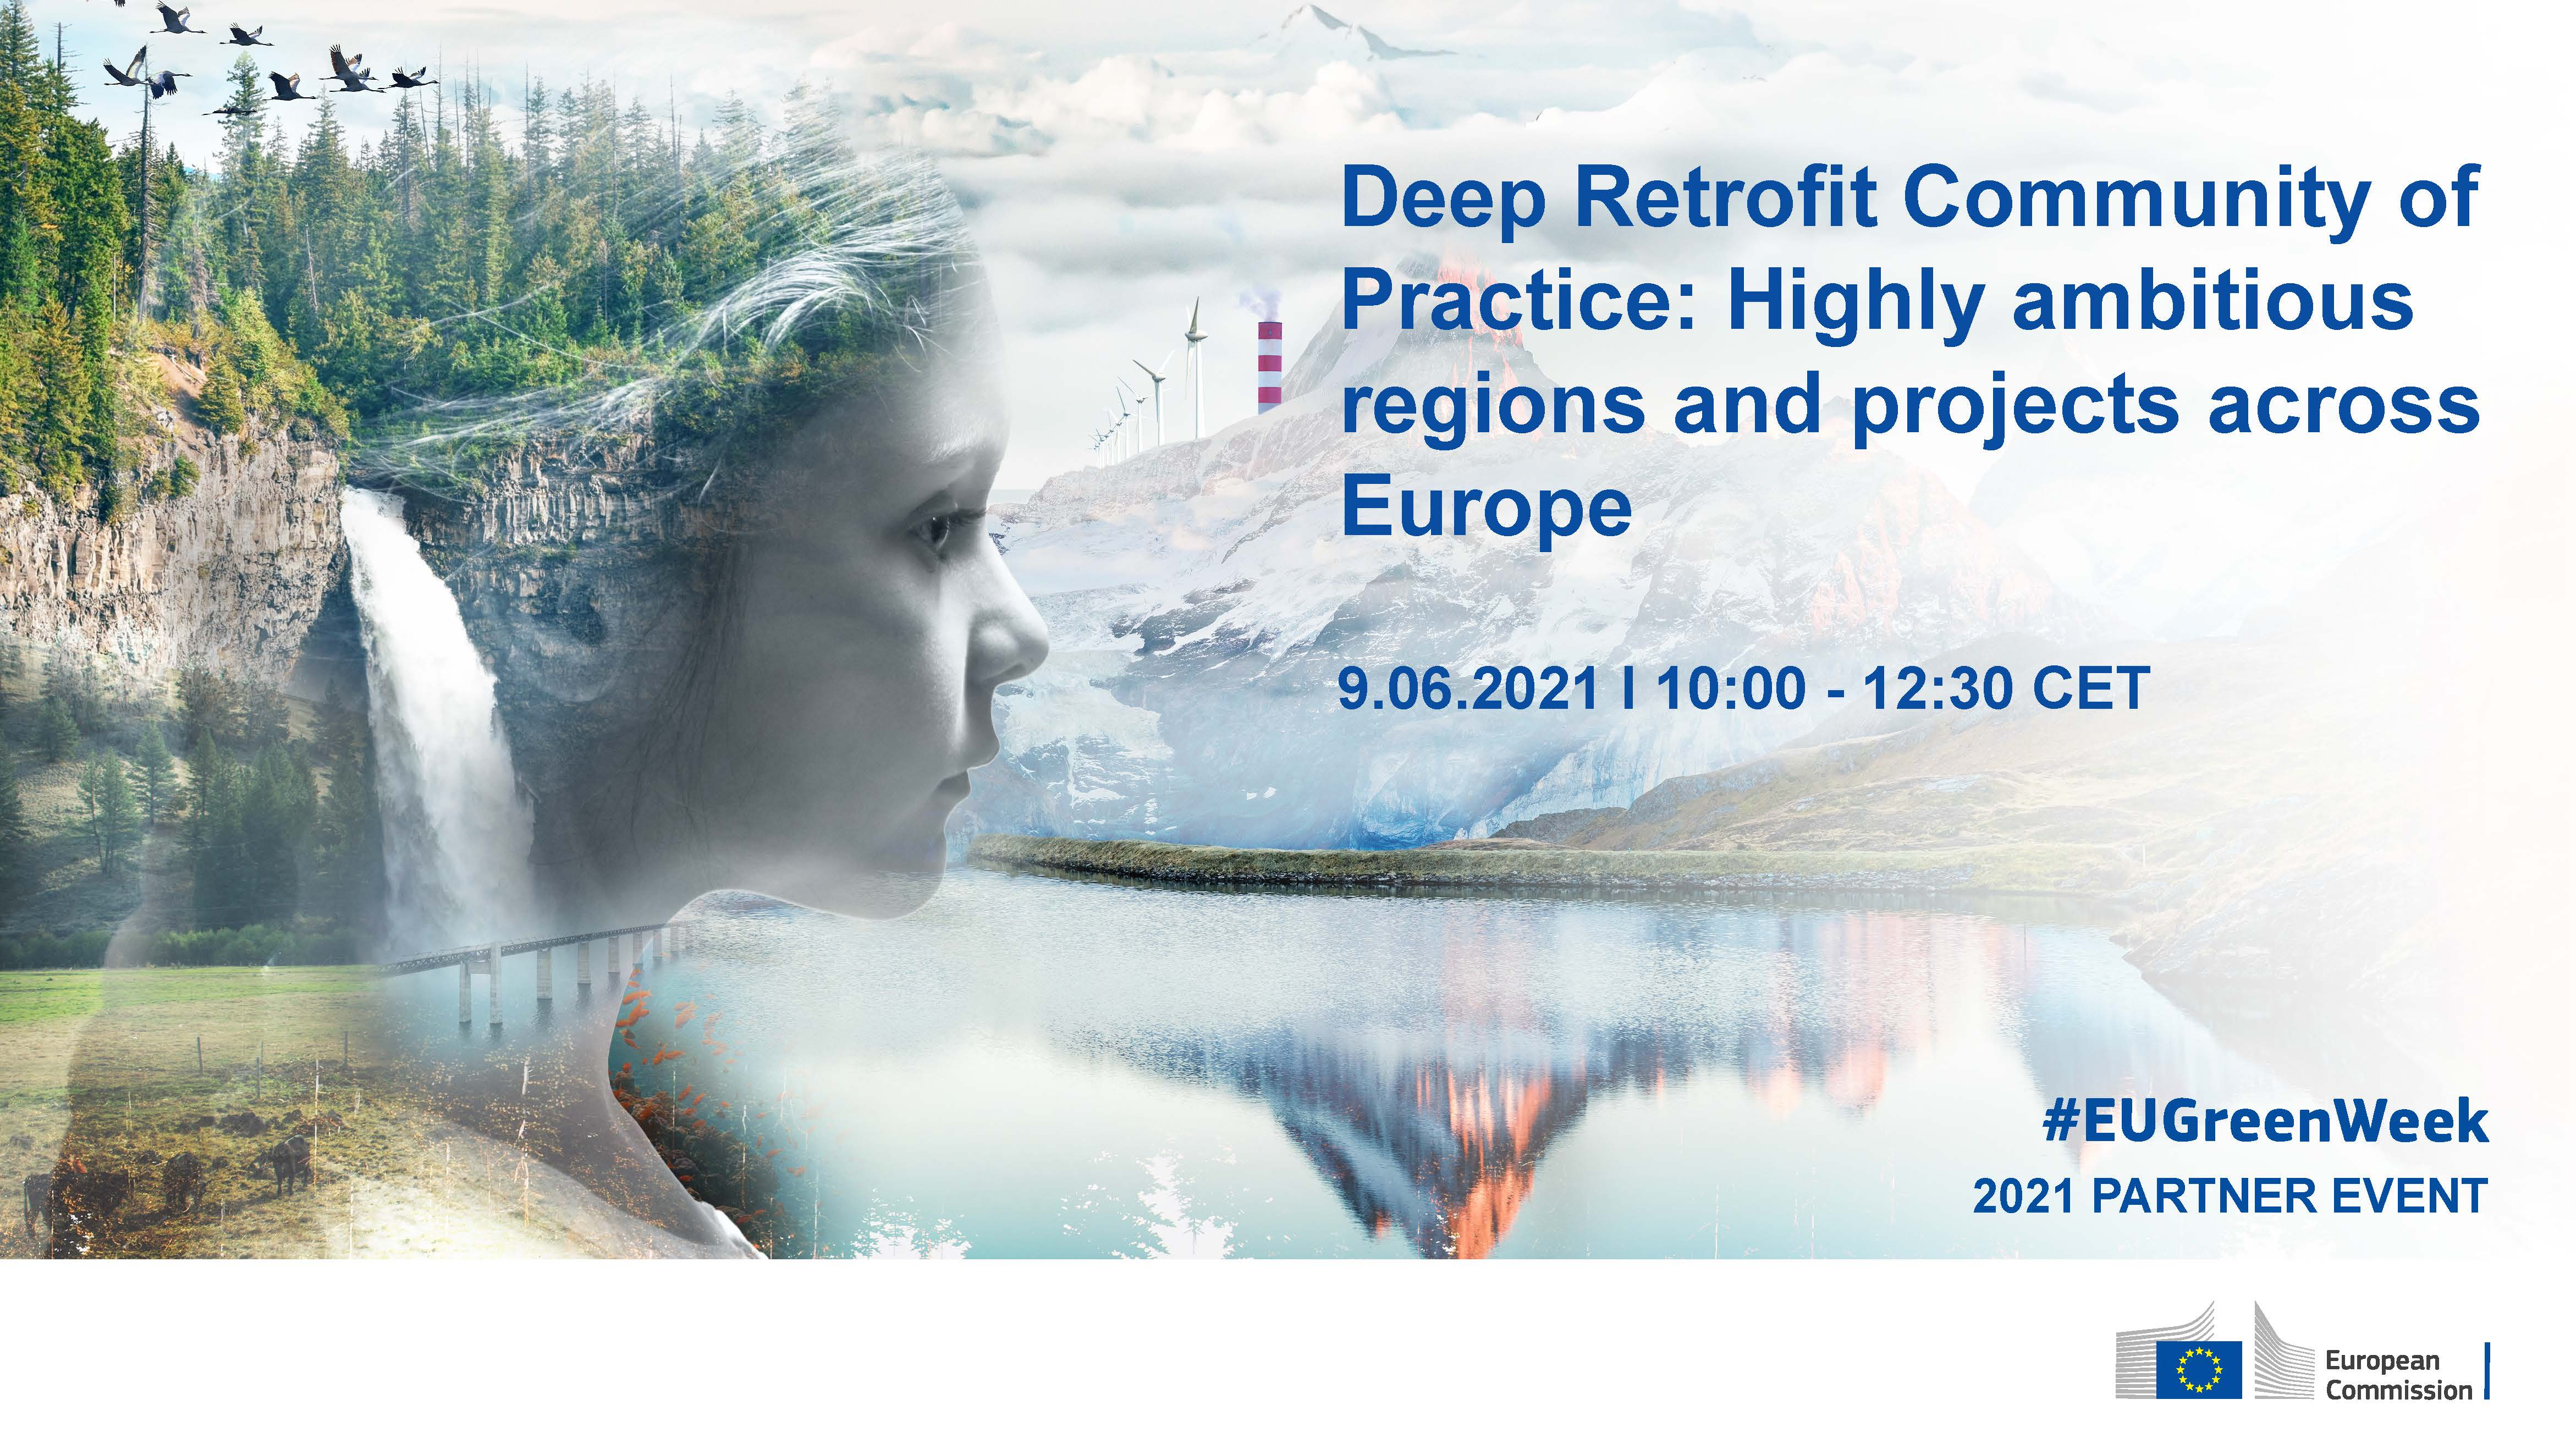 Deep Retrofit Community of Practice: Highly ambitious regions and projects across Europe